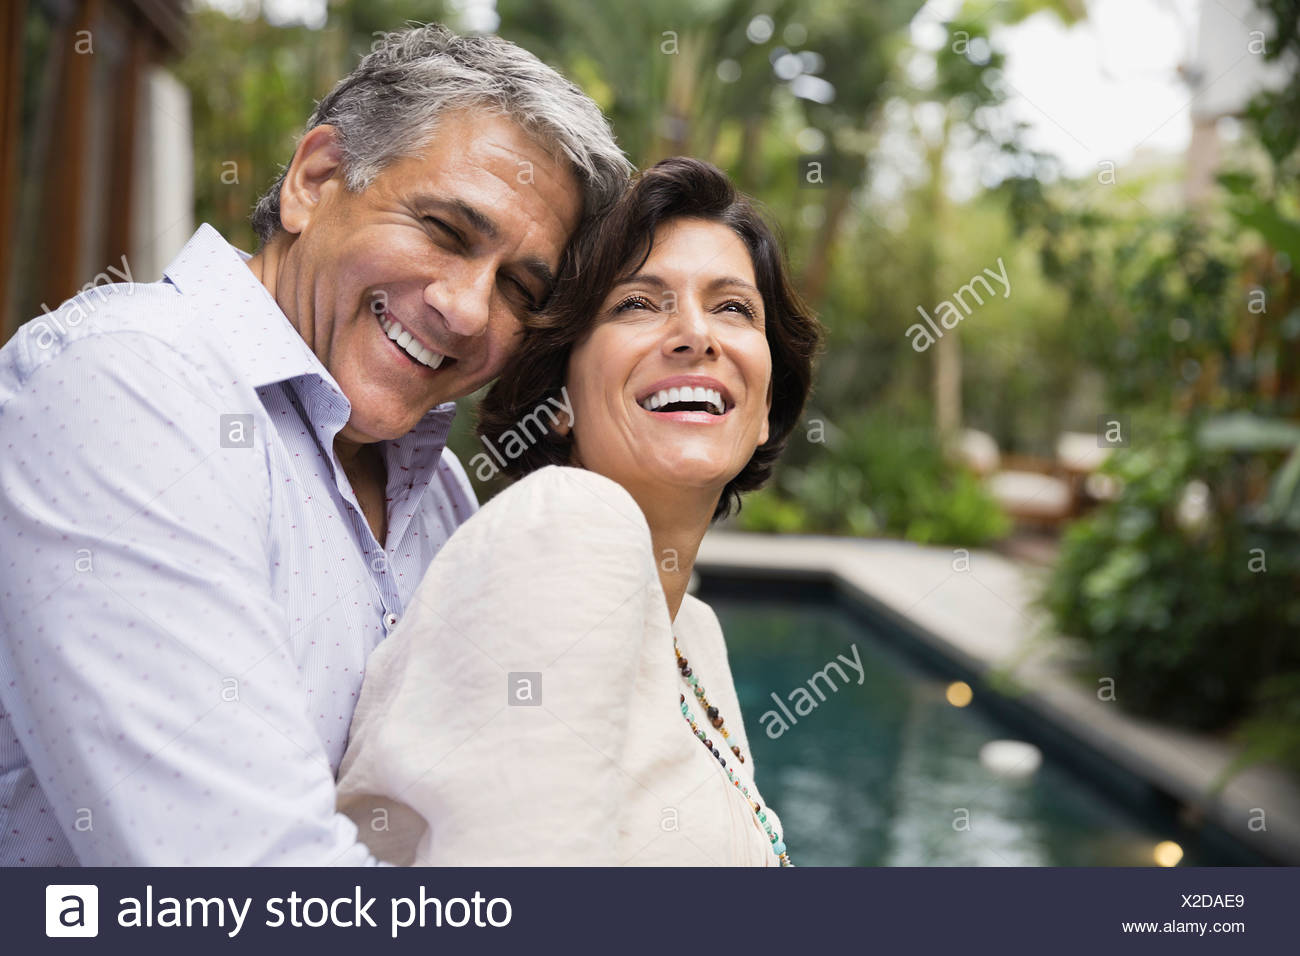 Young couple embracing outdoors Photo Stock